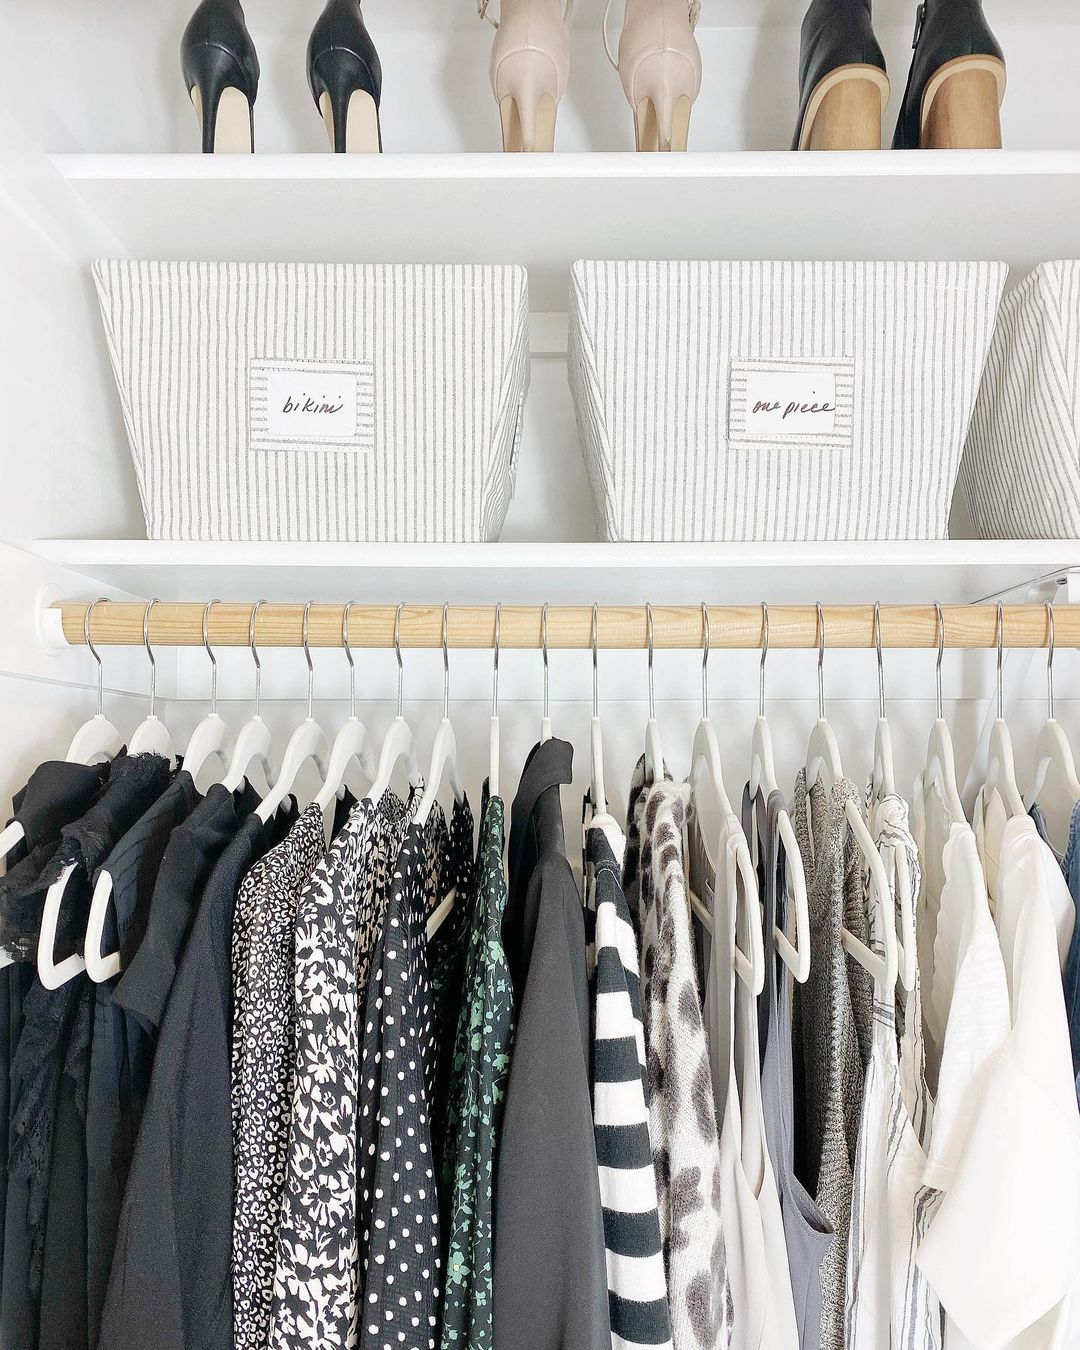 What to Do With Your Clothing Donations While Social Distancing